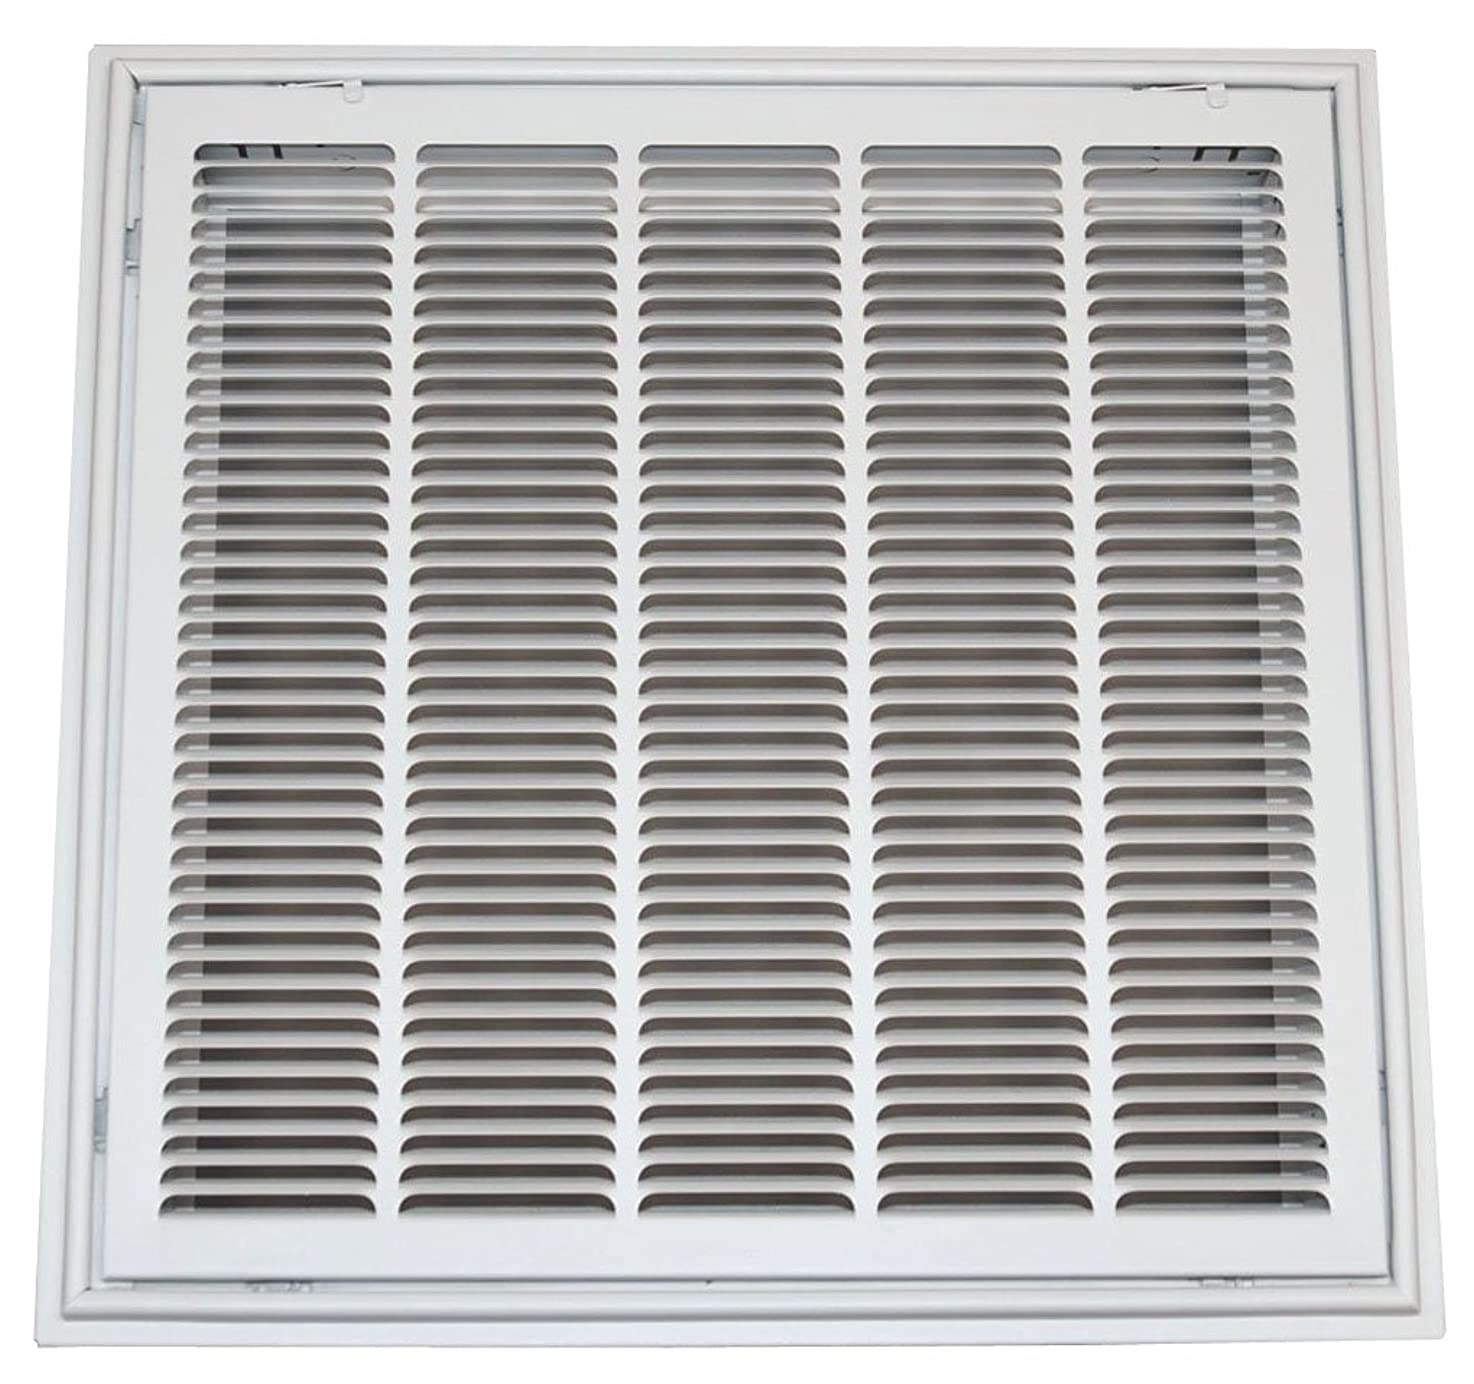 Speedi-Grille TB-SFG 24-Inch by 24-Inch White Drop Ceiling T-Bar Stamped Face Return Air Filter Grille